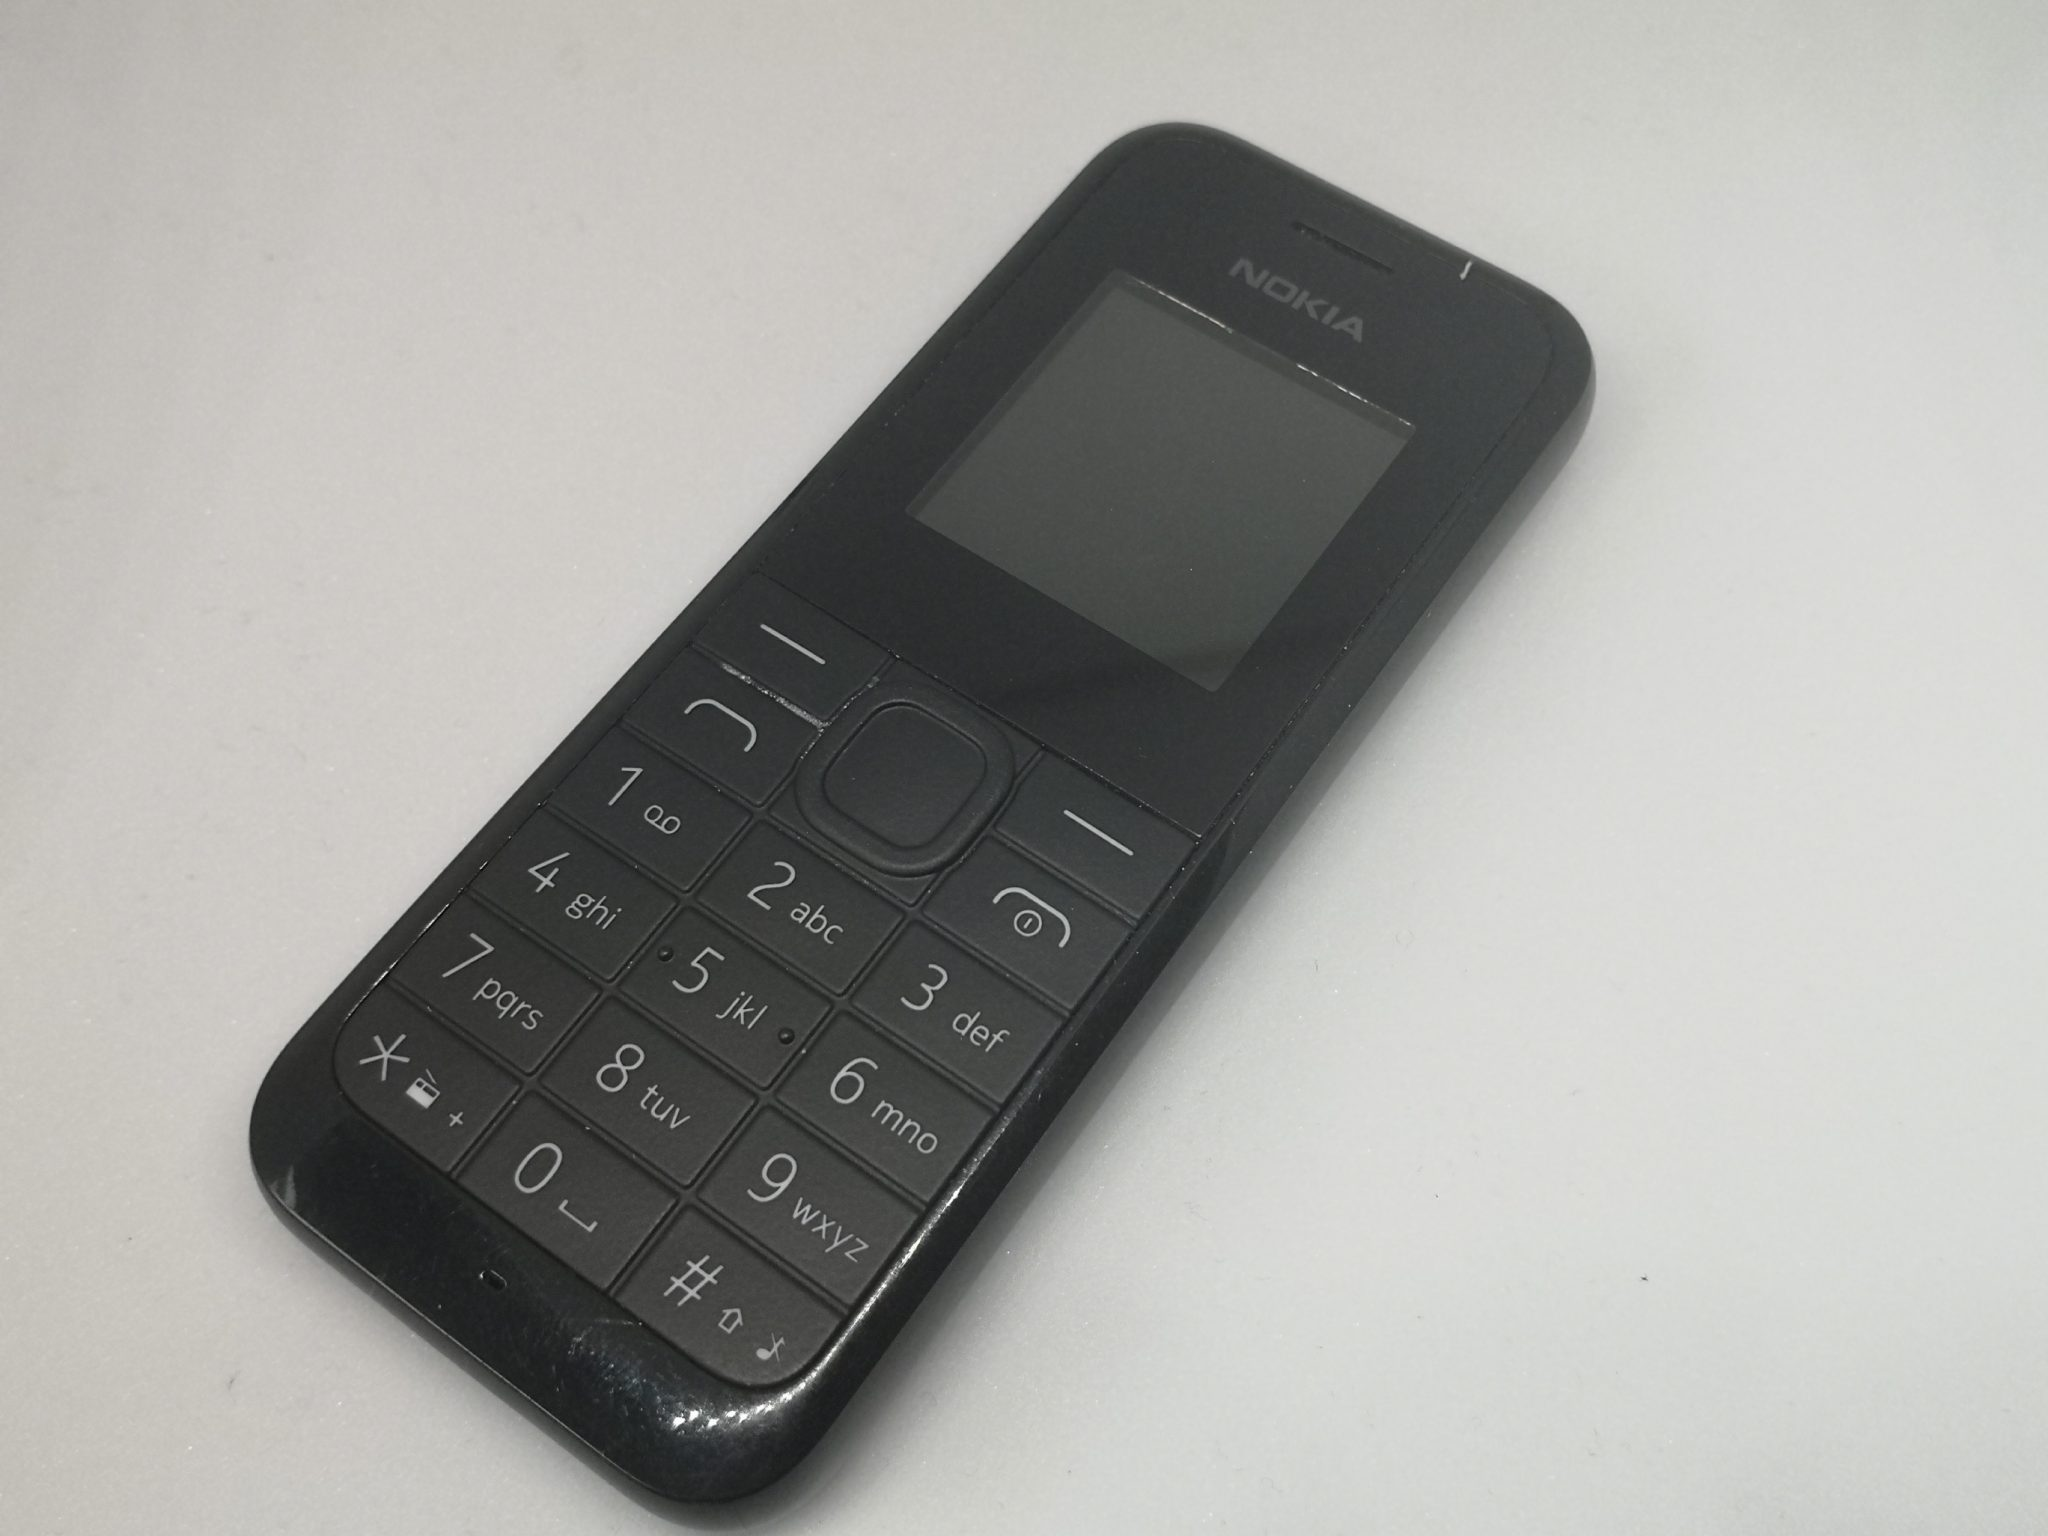 Nokia 105 2013 Review - Extreme Value for Money Vintage Phone